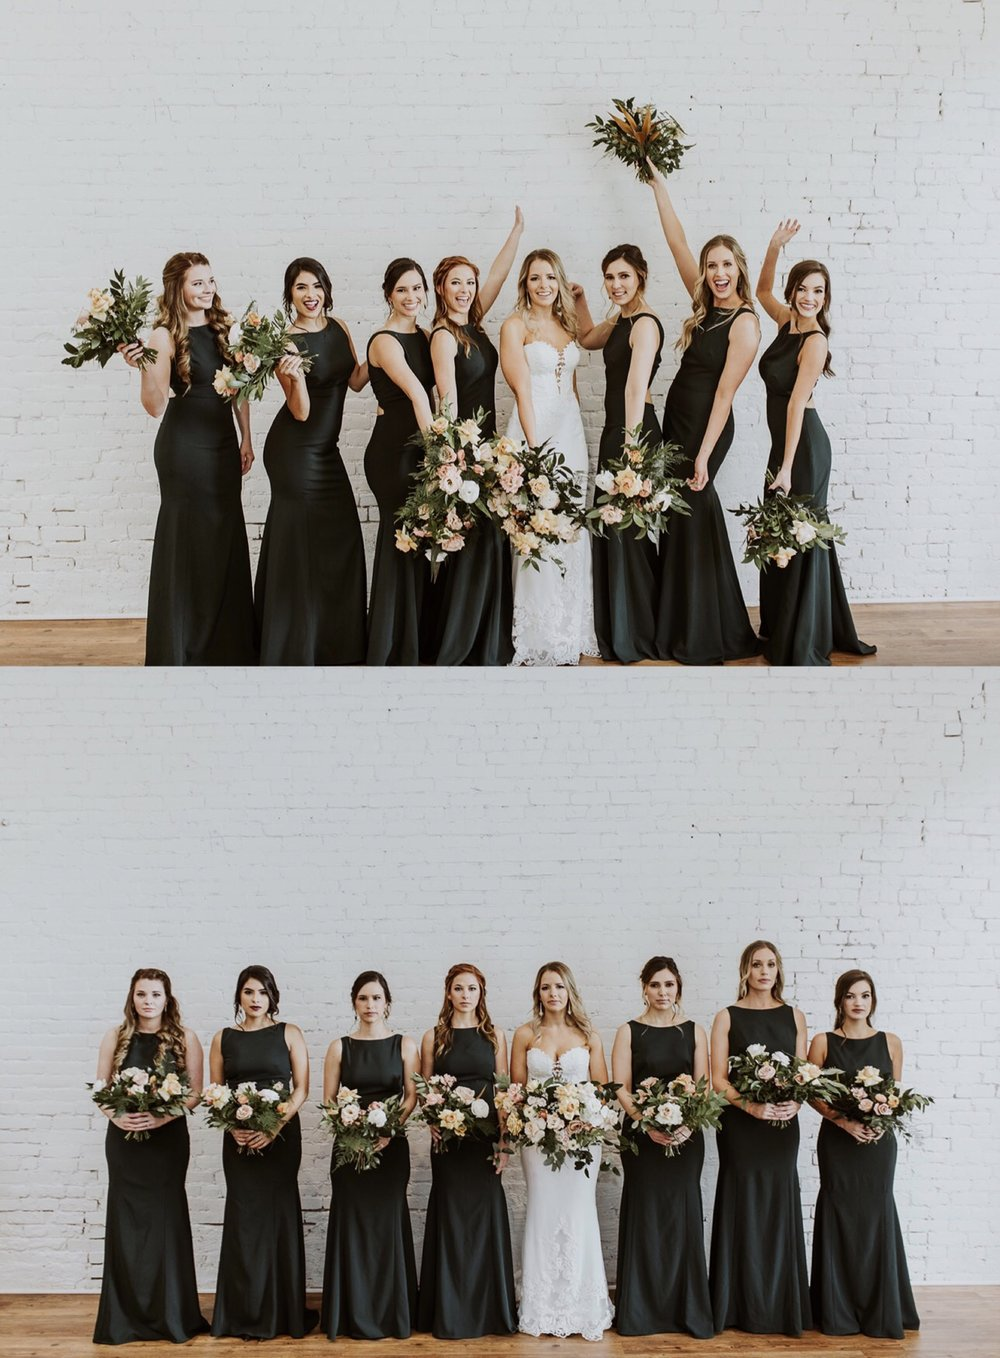 bridesmaid style guide bouquets